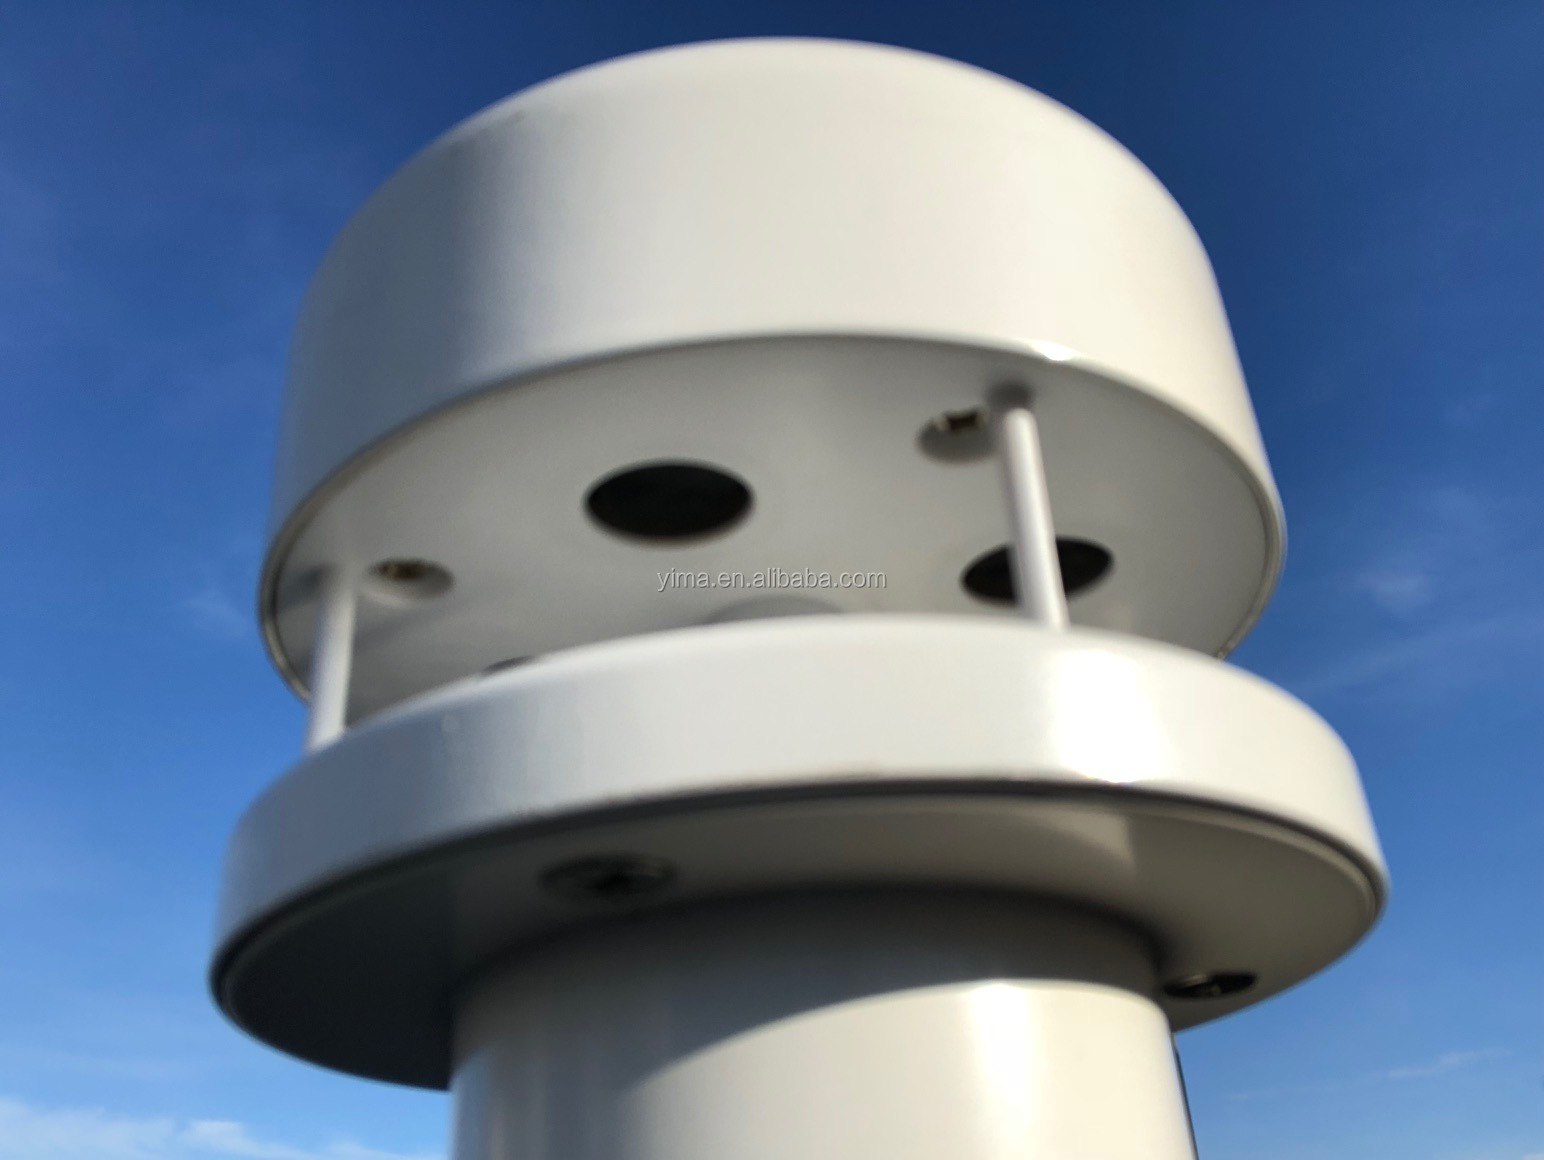 Ultrasonic Wind Sensor.jpg